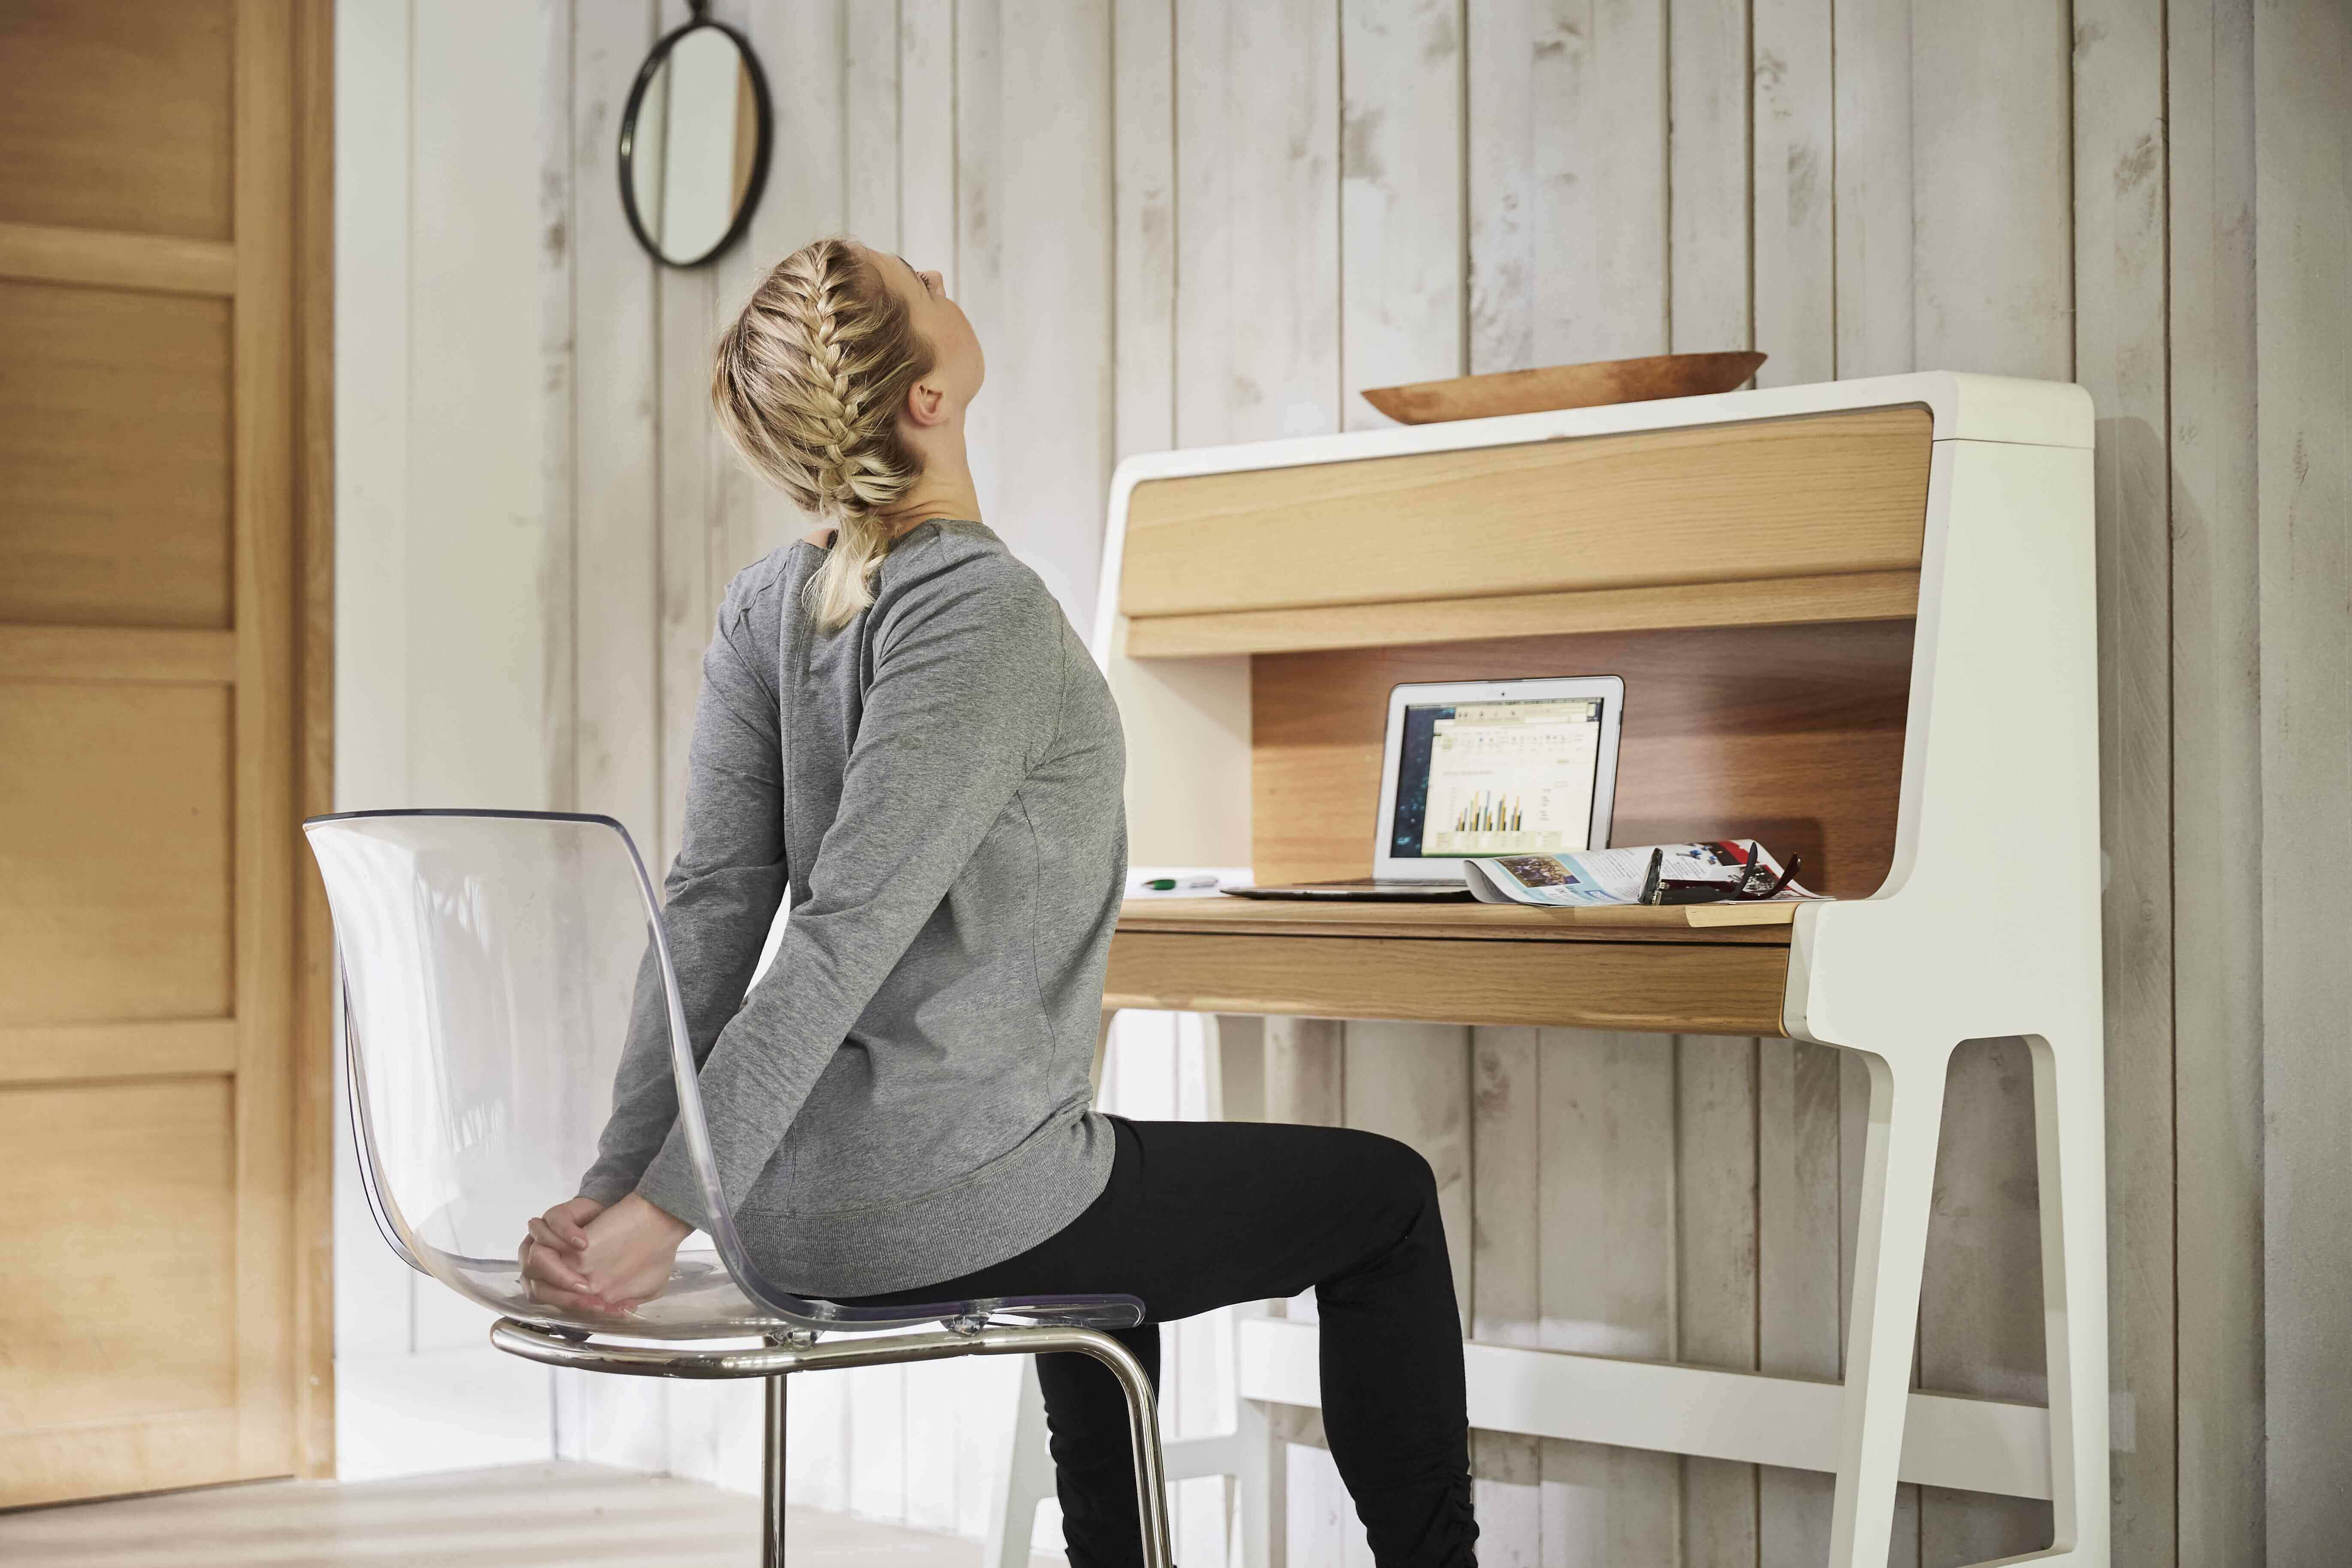 Activities to do to keep yourself active during work from home